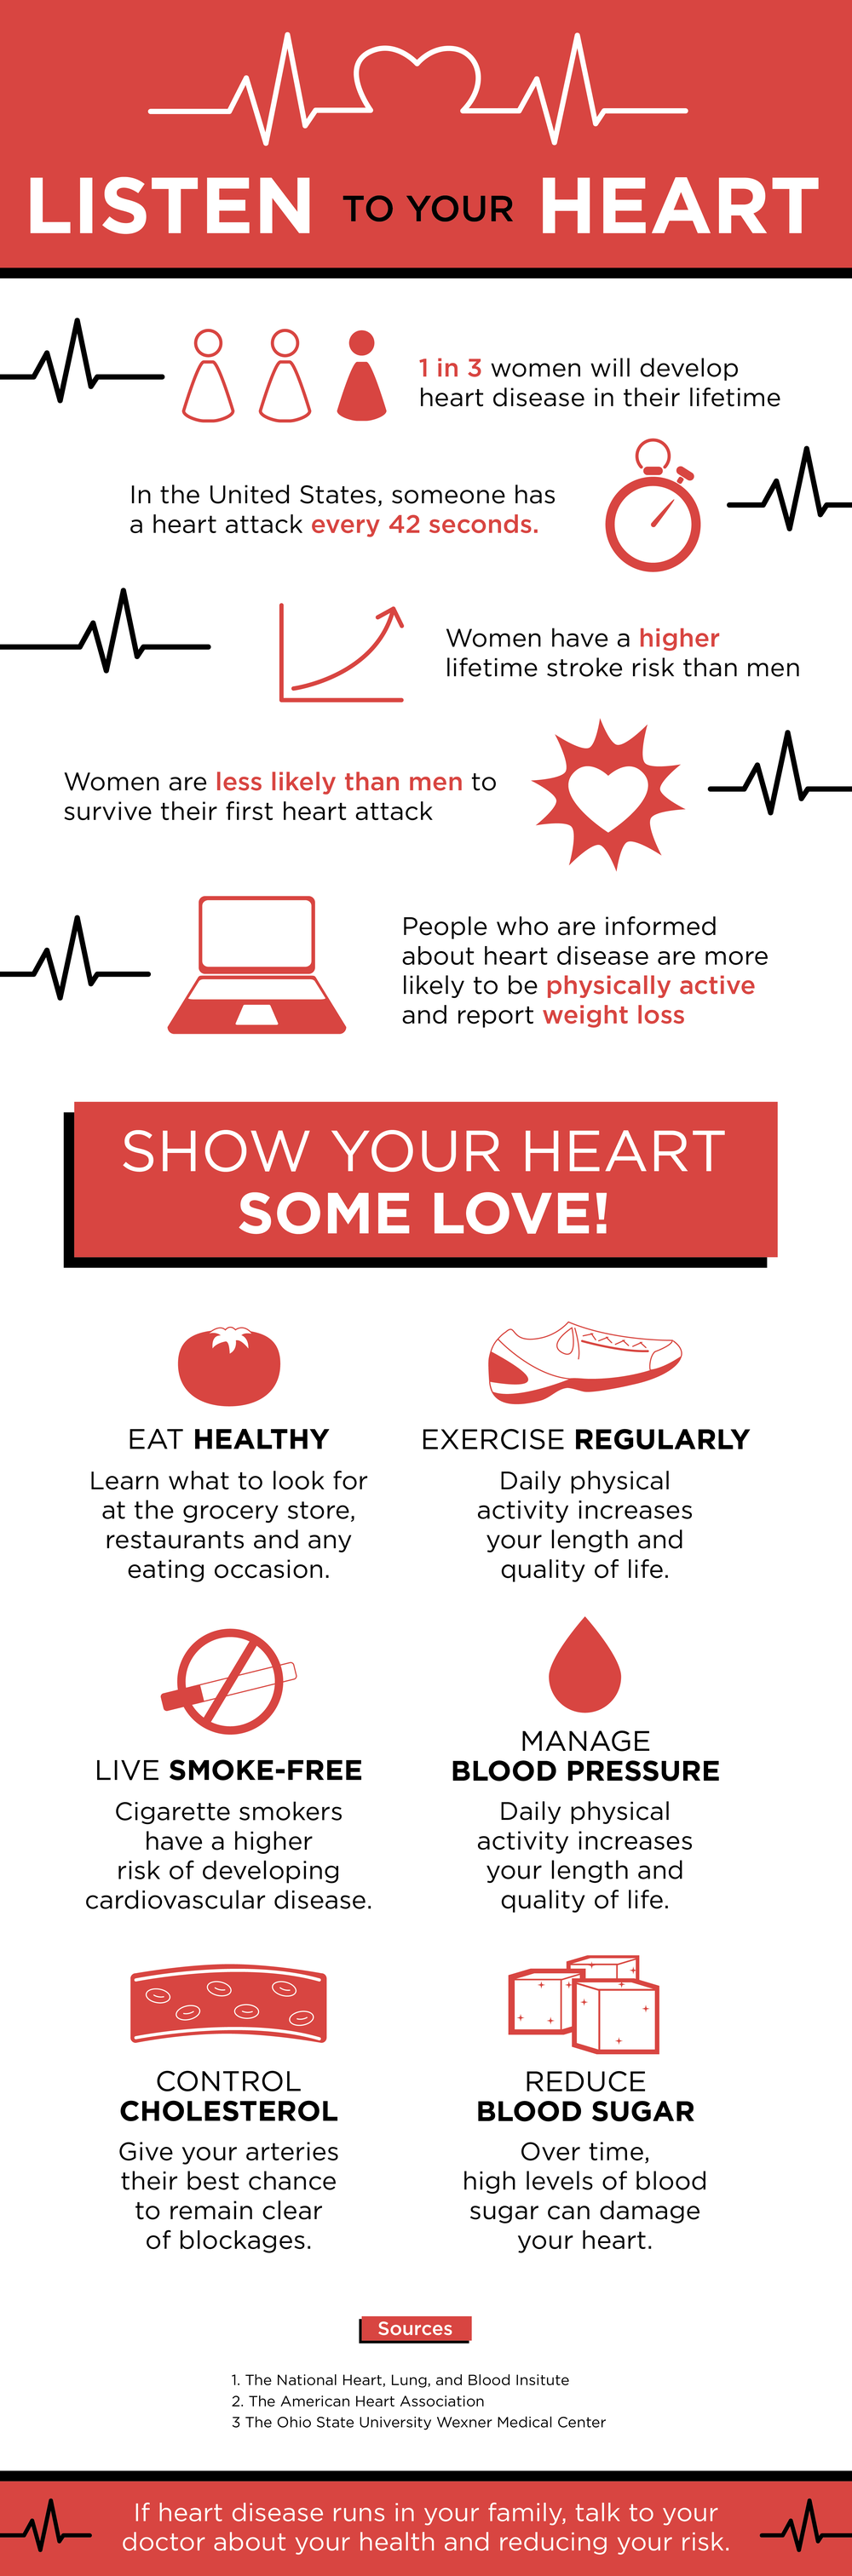 Heart Health Infographic.png